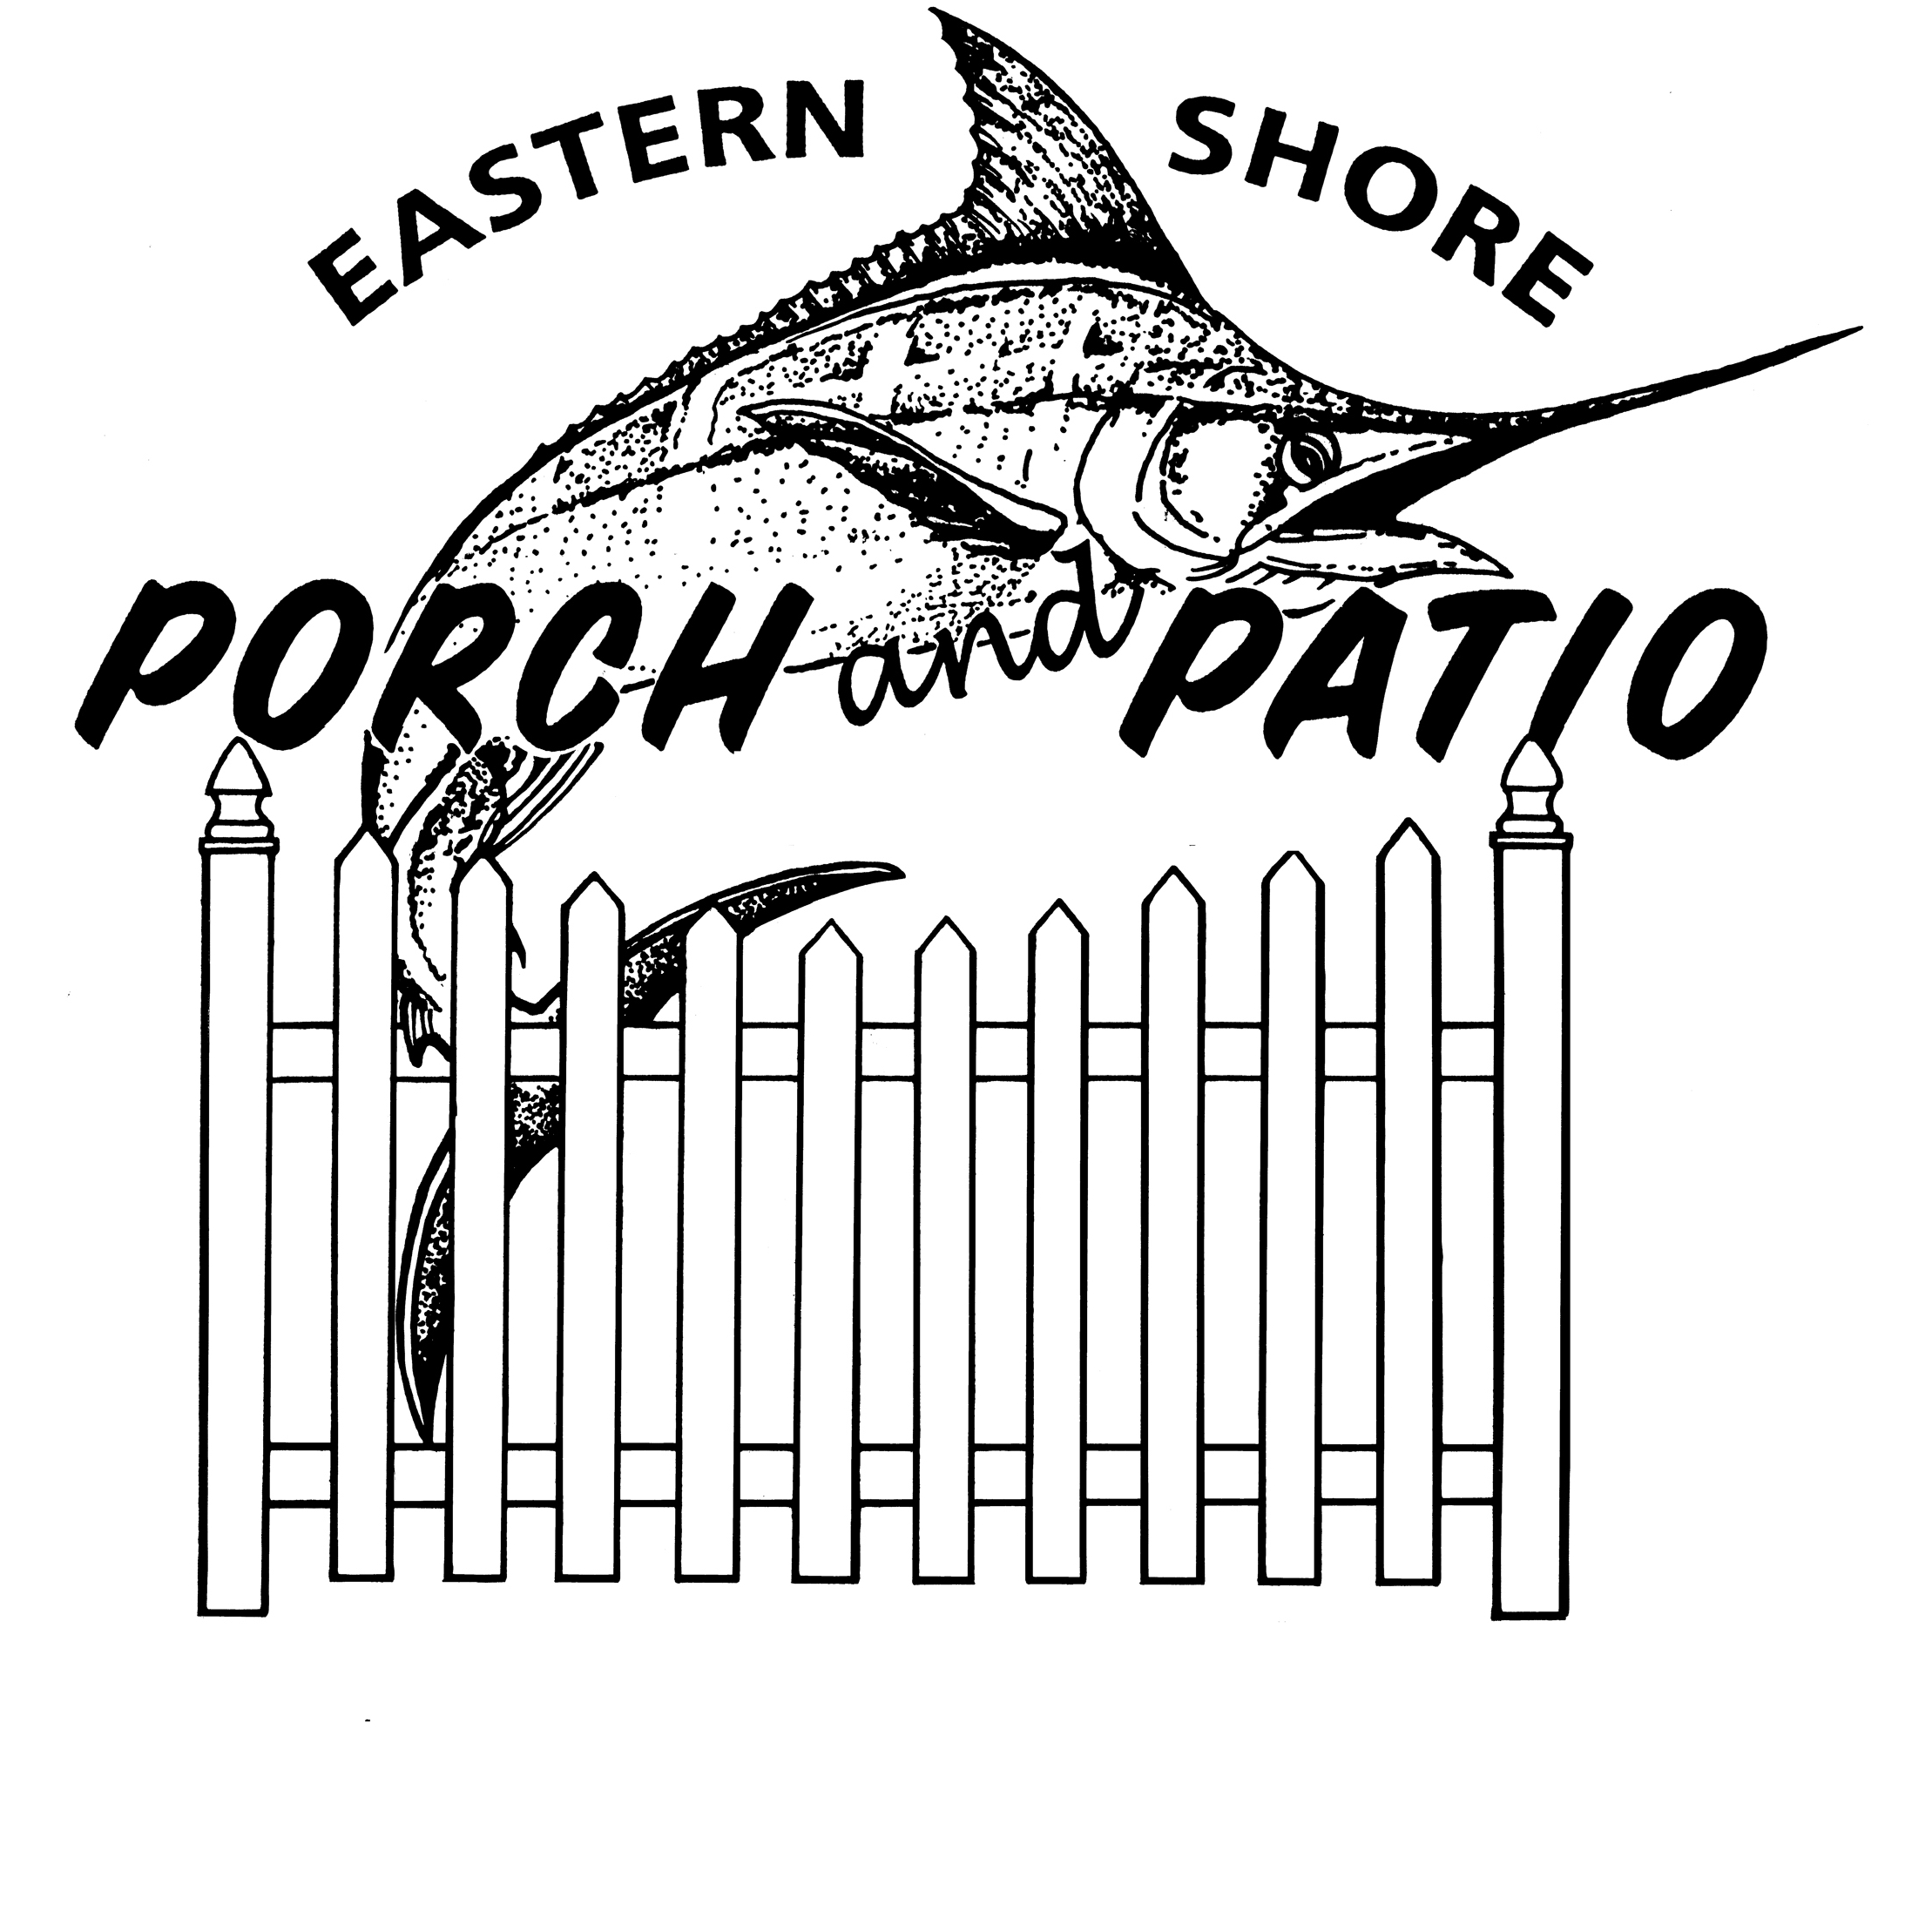 Eastern Shore Porch and Patio